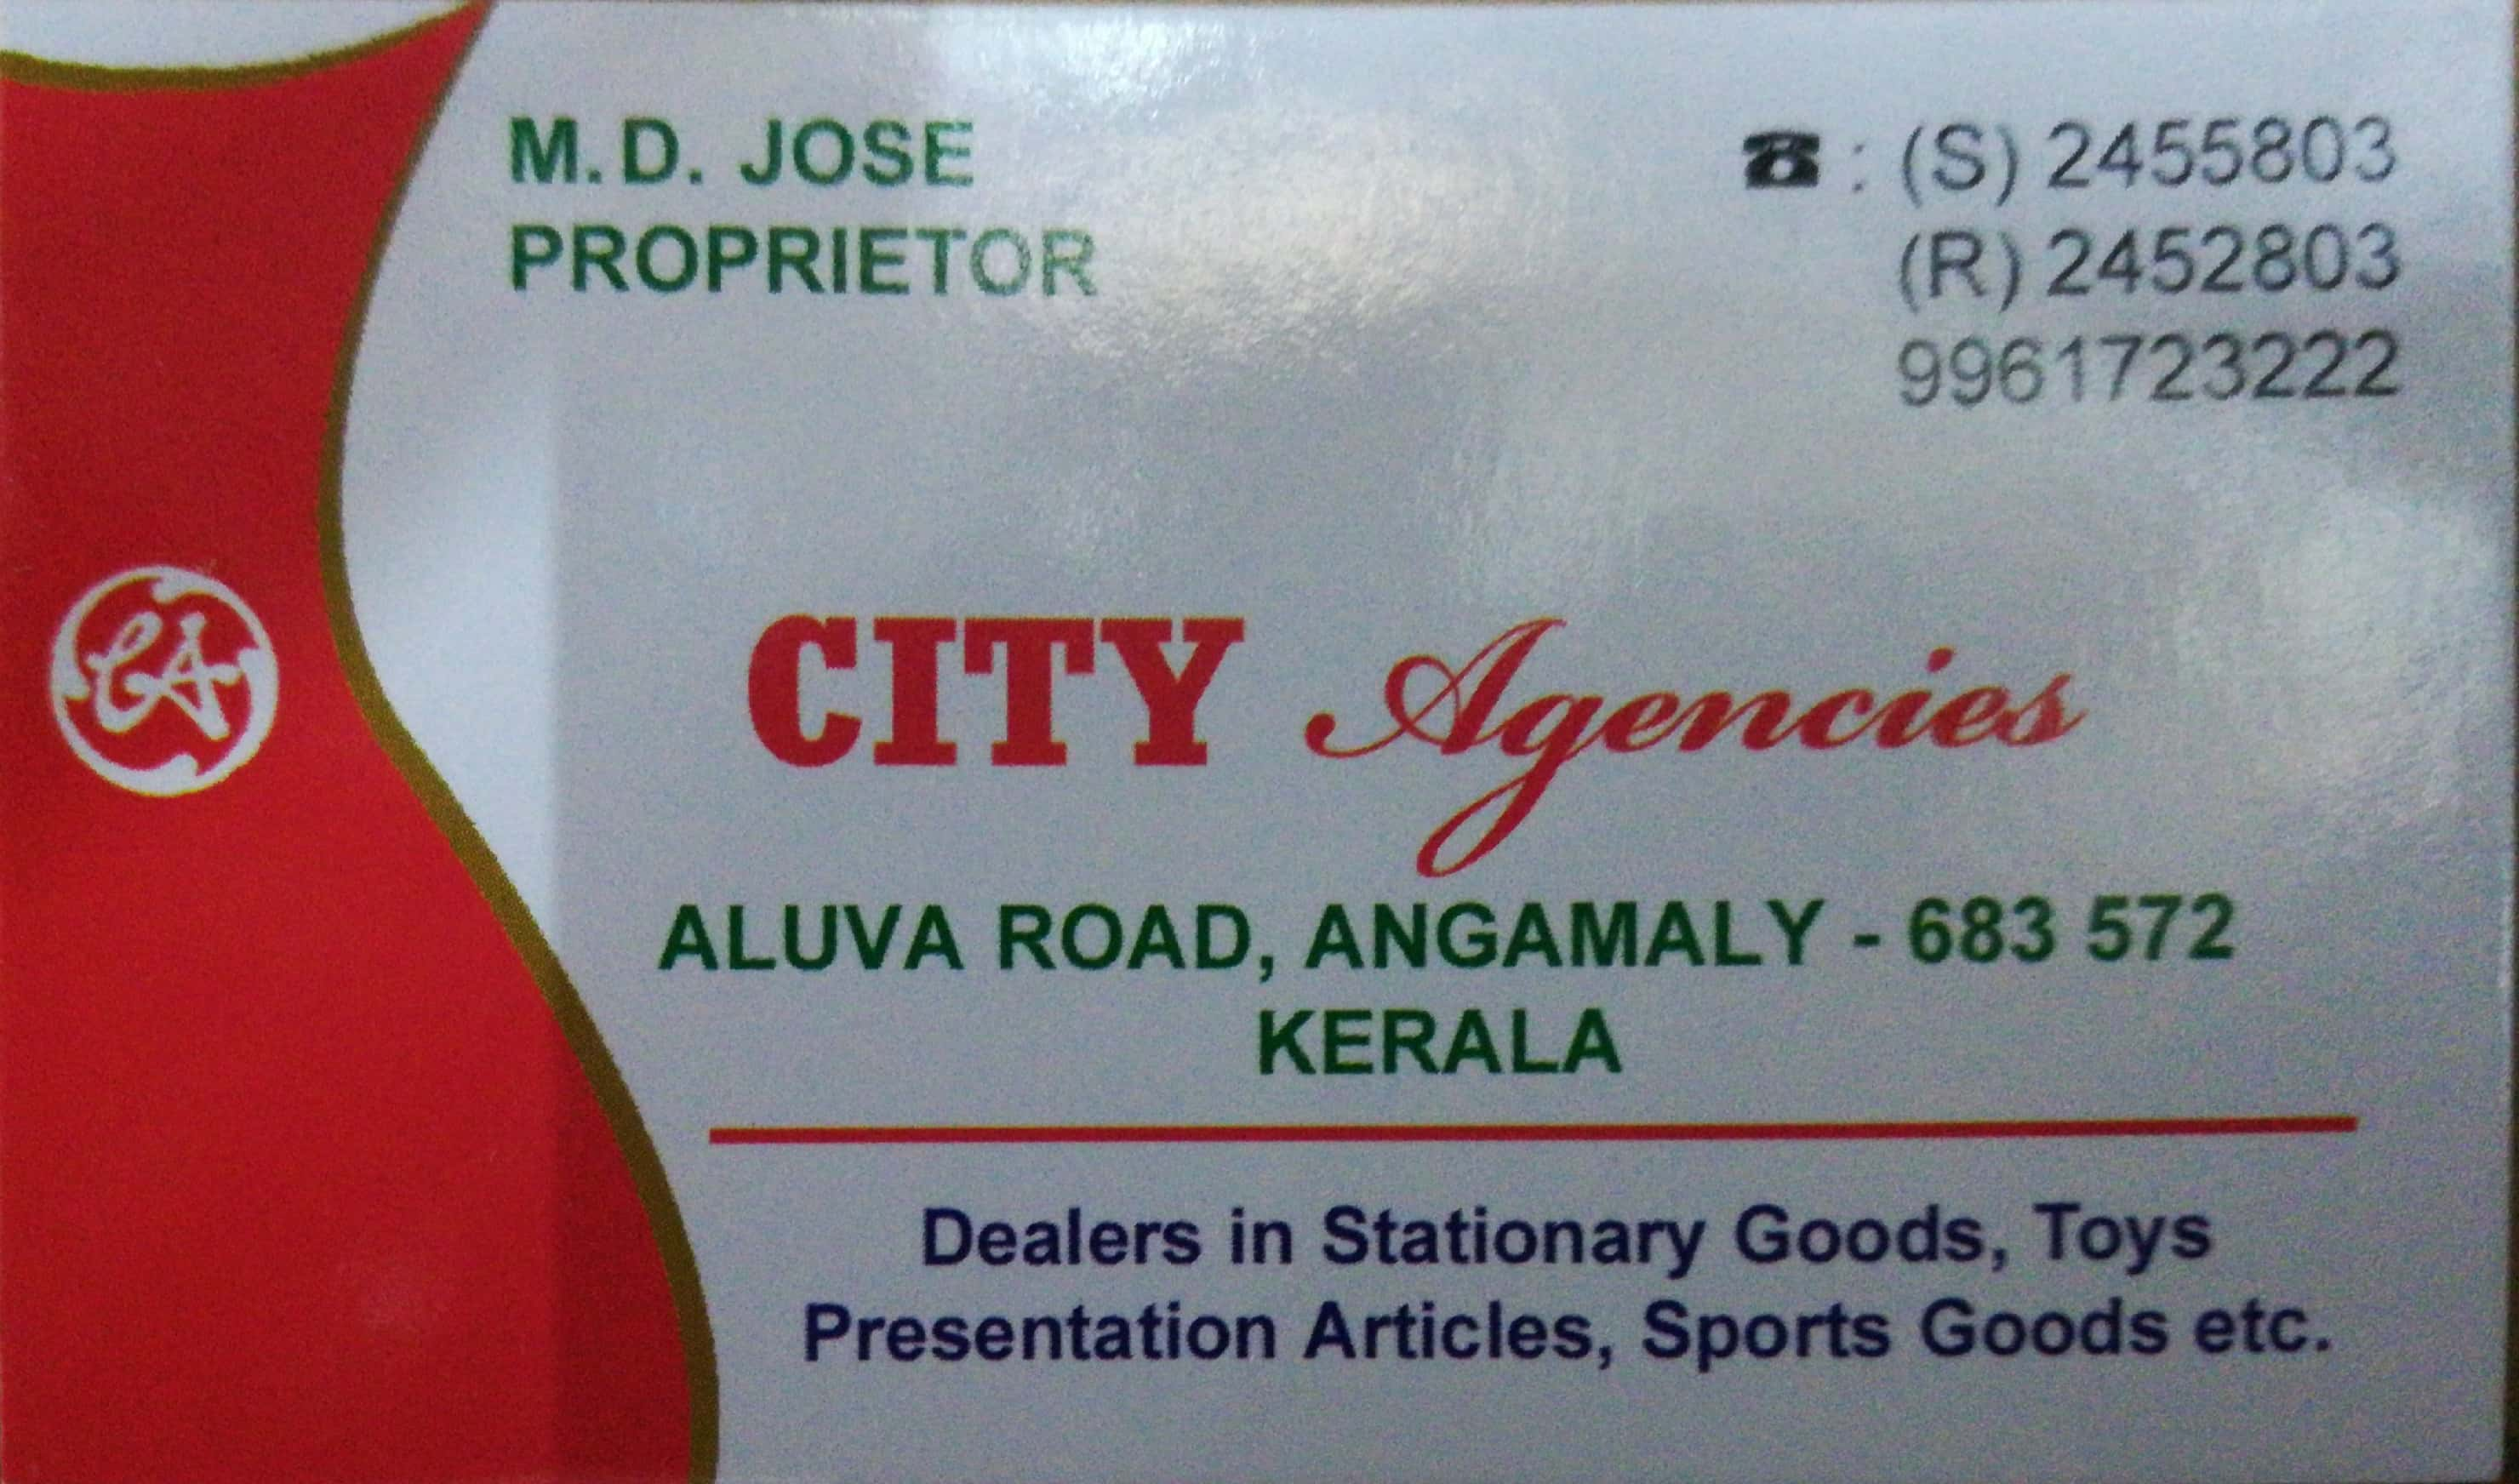 CITY Agencies, FANCY & COSTUMES,  service in Angamali, Ernakulam